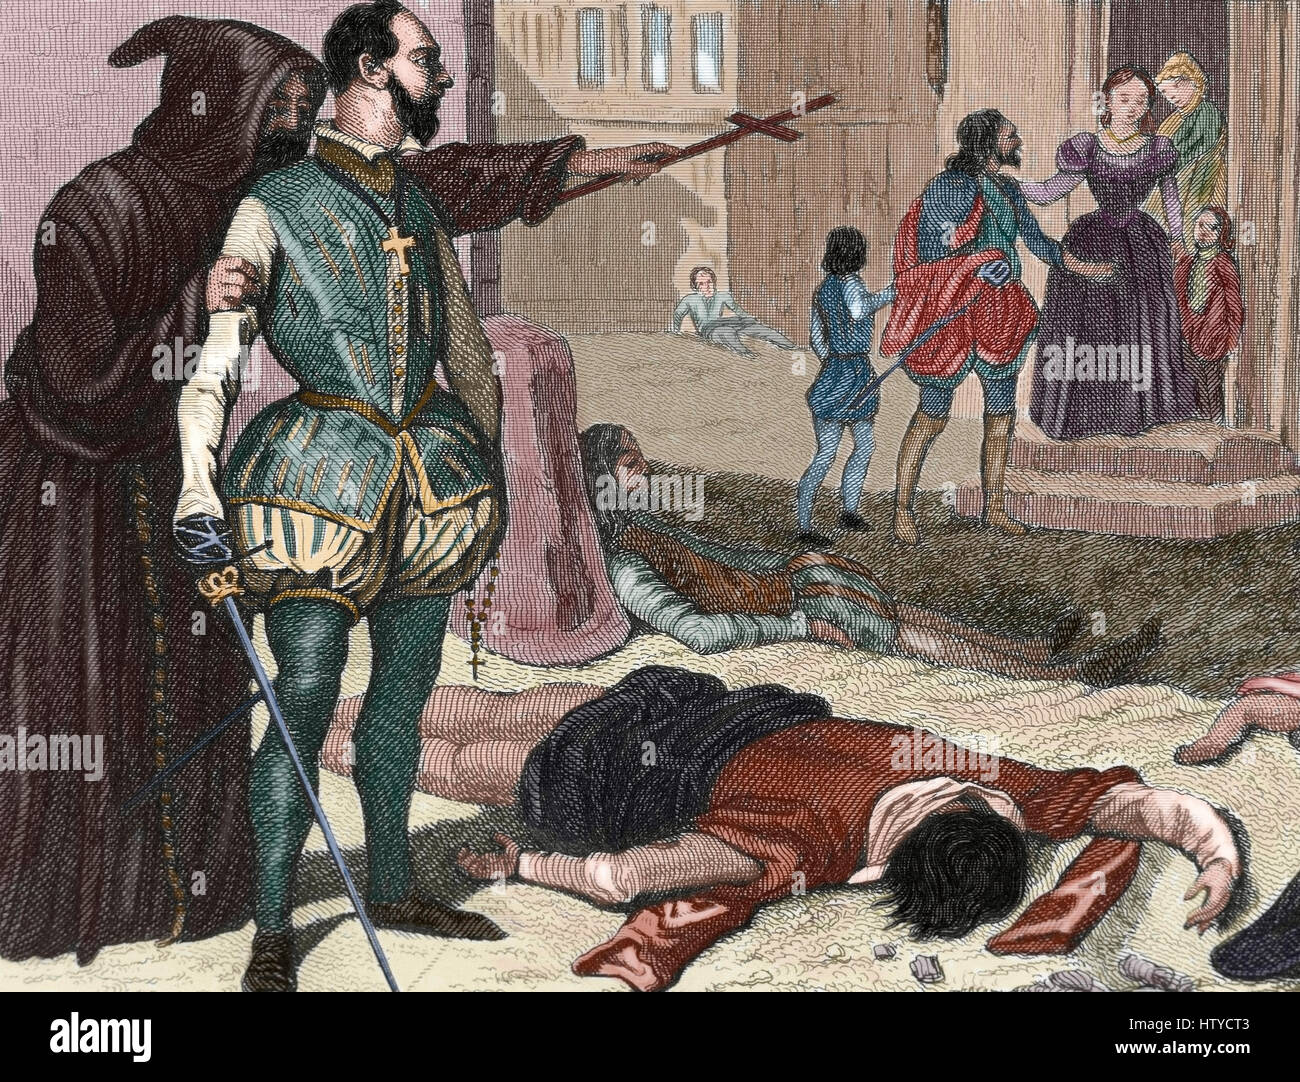 France. French Wars of Religion. St. Batholomew's Day massacre, 1572. Assassinations of Catholic violence against the Huguenots, the French Calvinist Protestants. Engraving. 19th century. Colored. Stock Photo